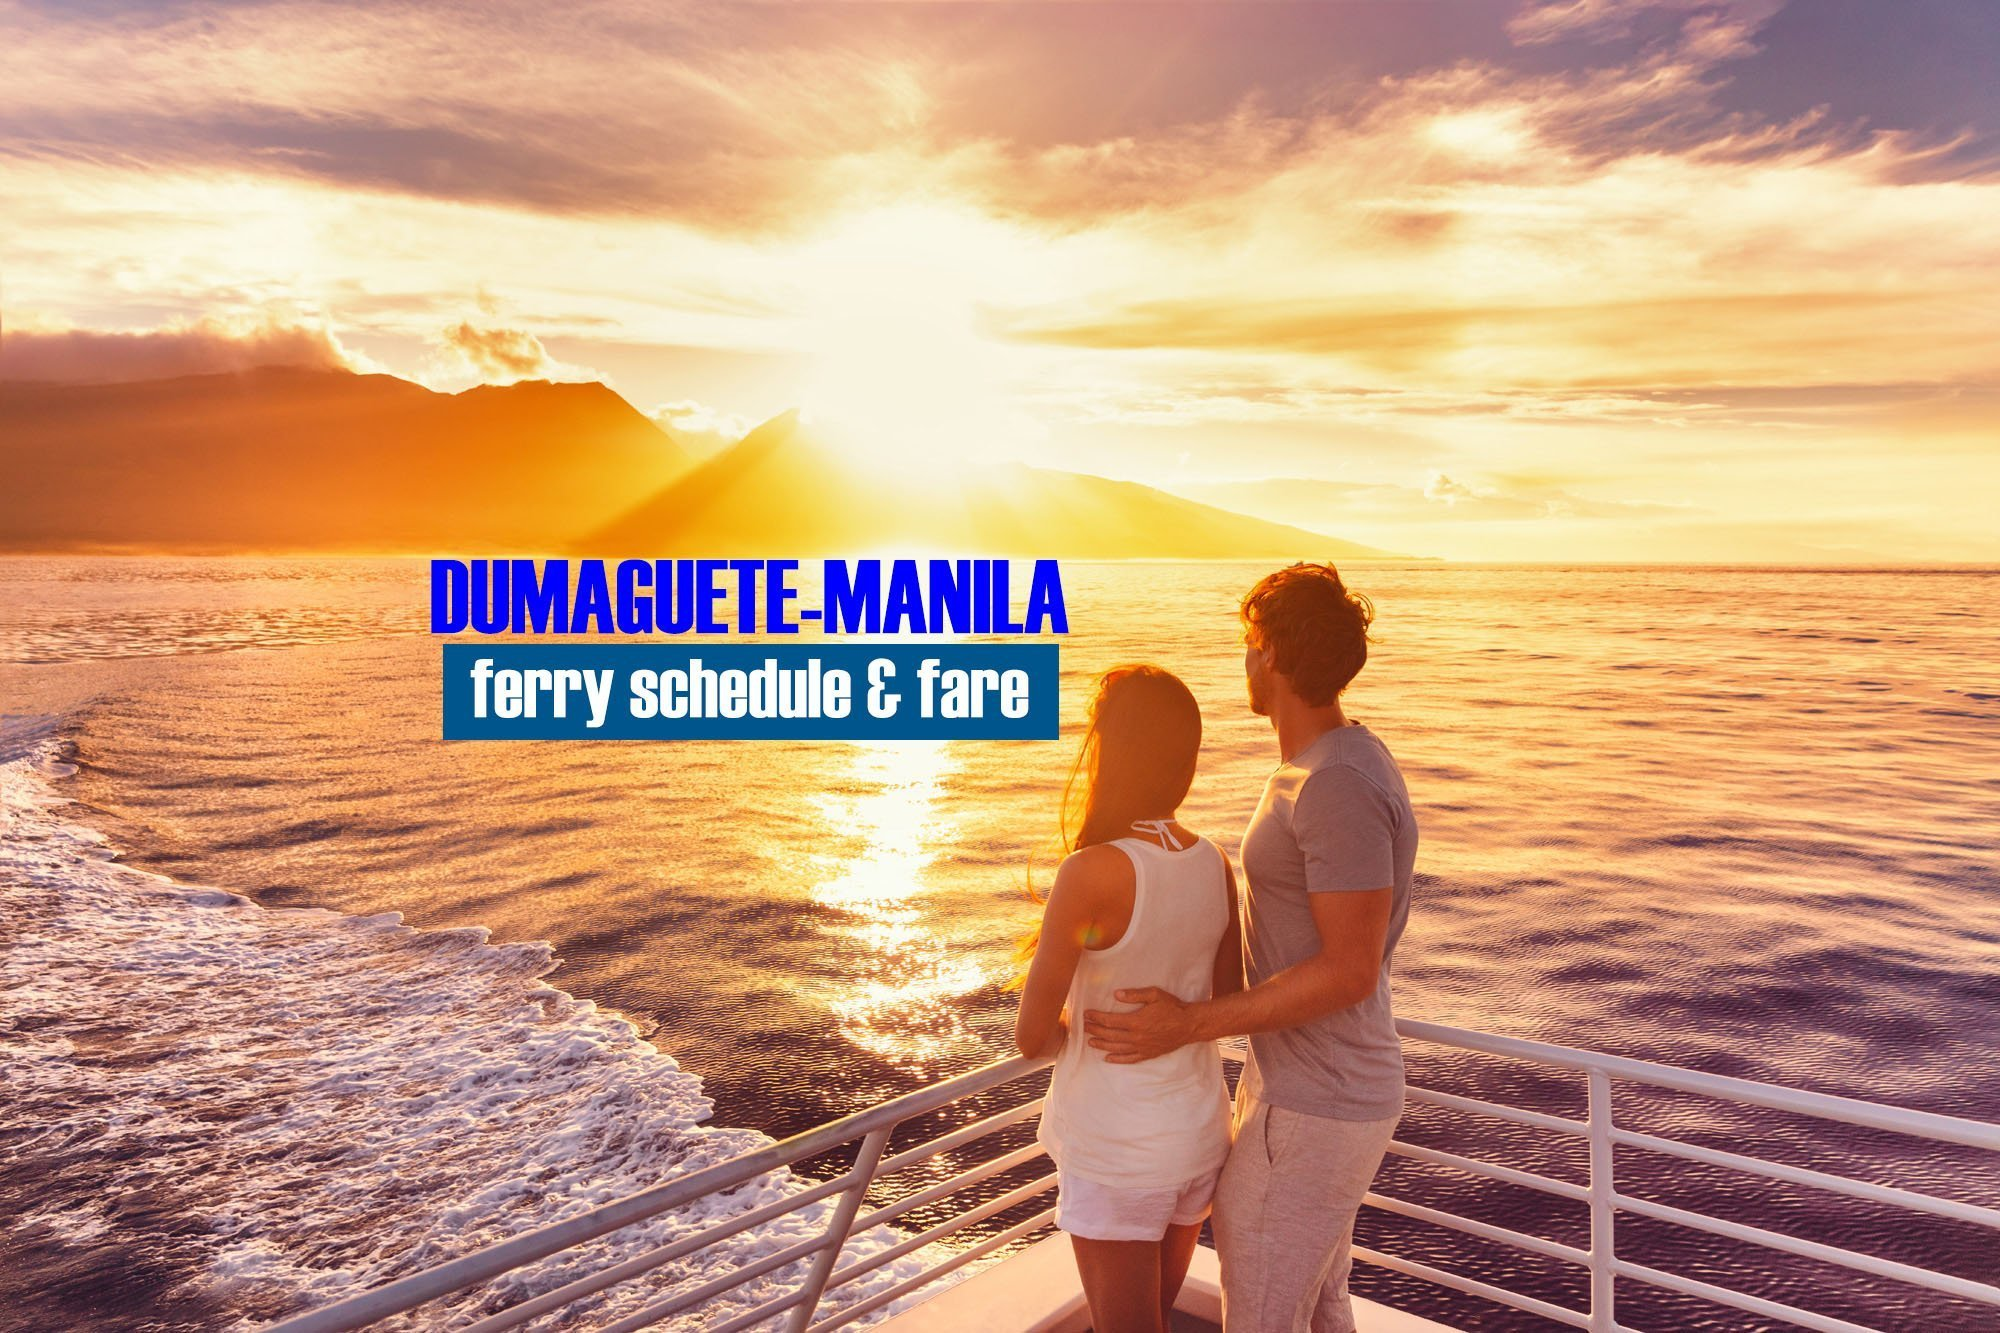 Dumaguete to Manila: 2020 Boat Schedule and Fare